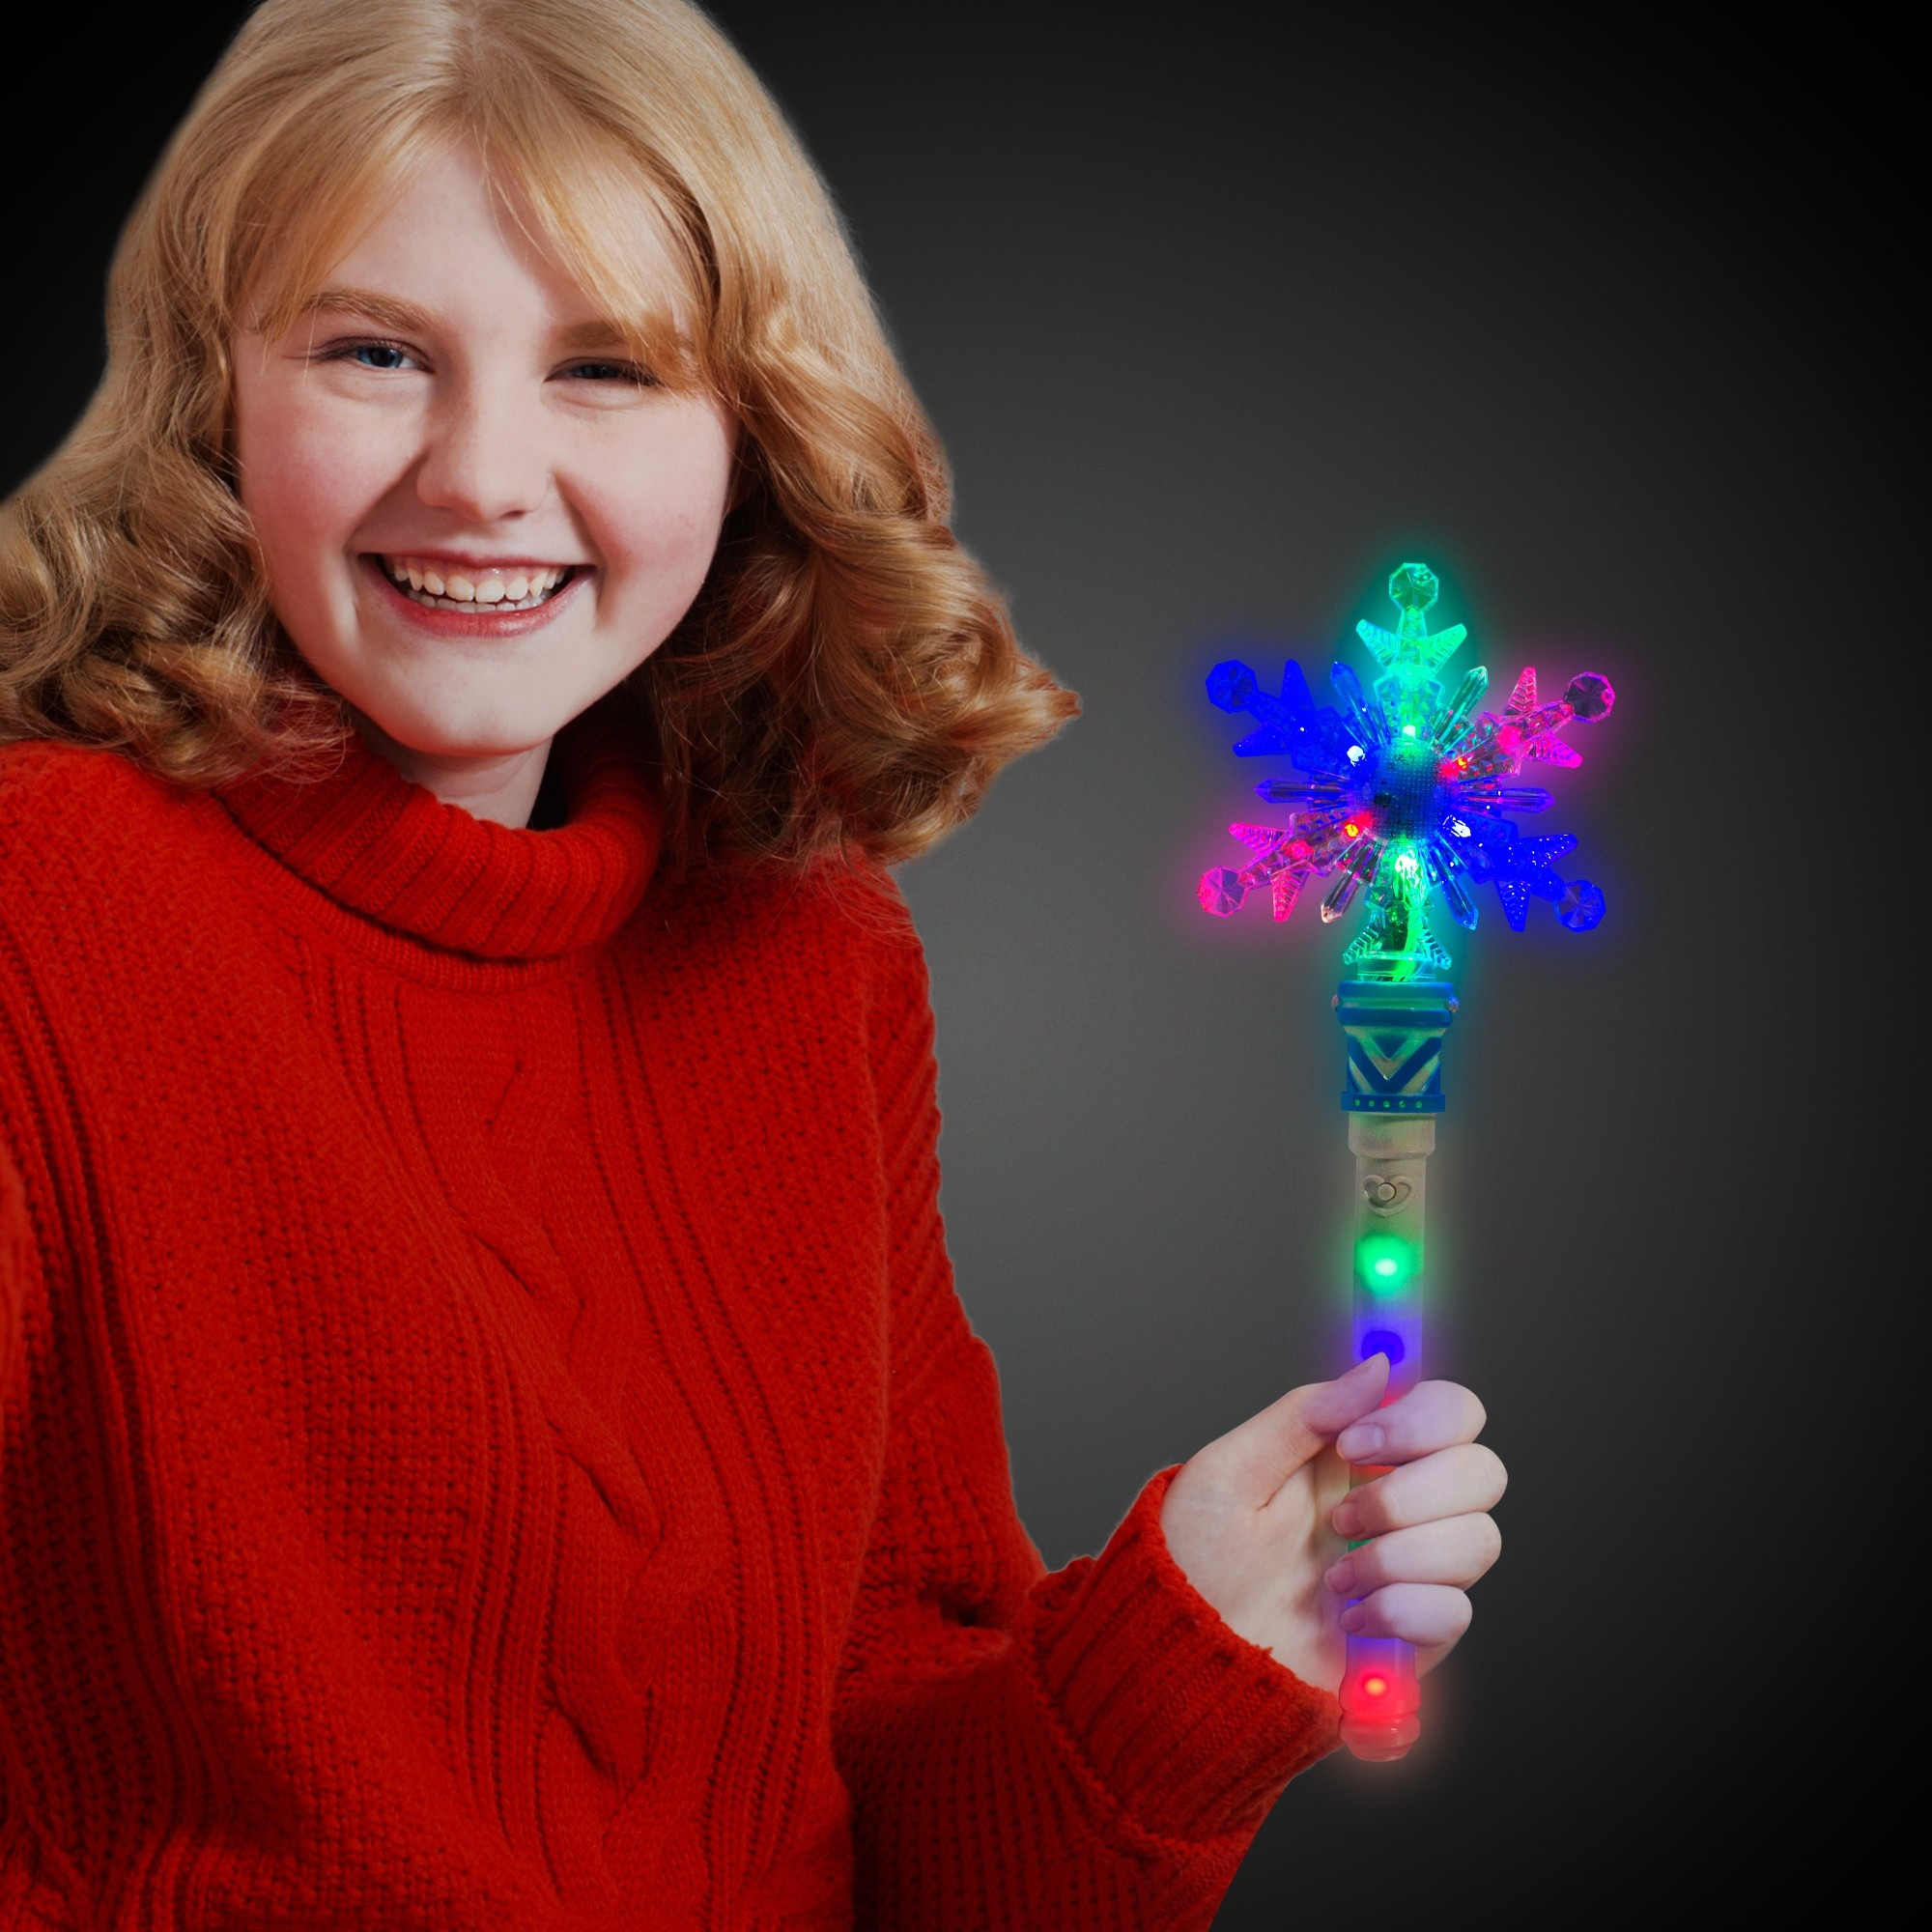 LED Snowflake Wand with Light-Up Handle